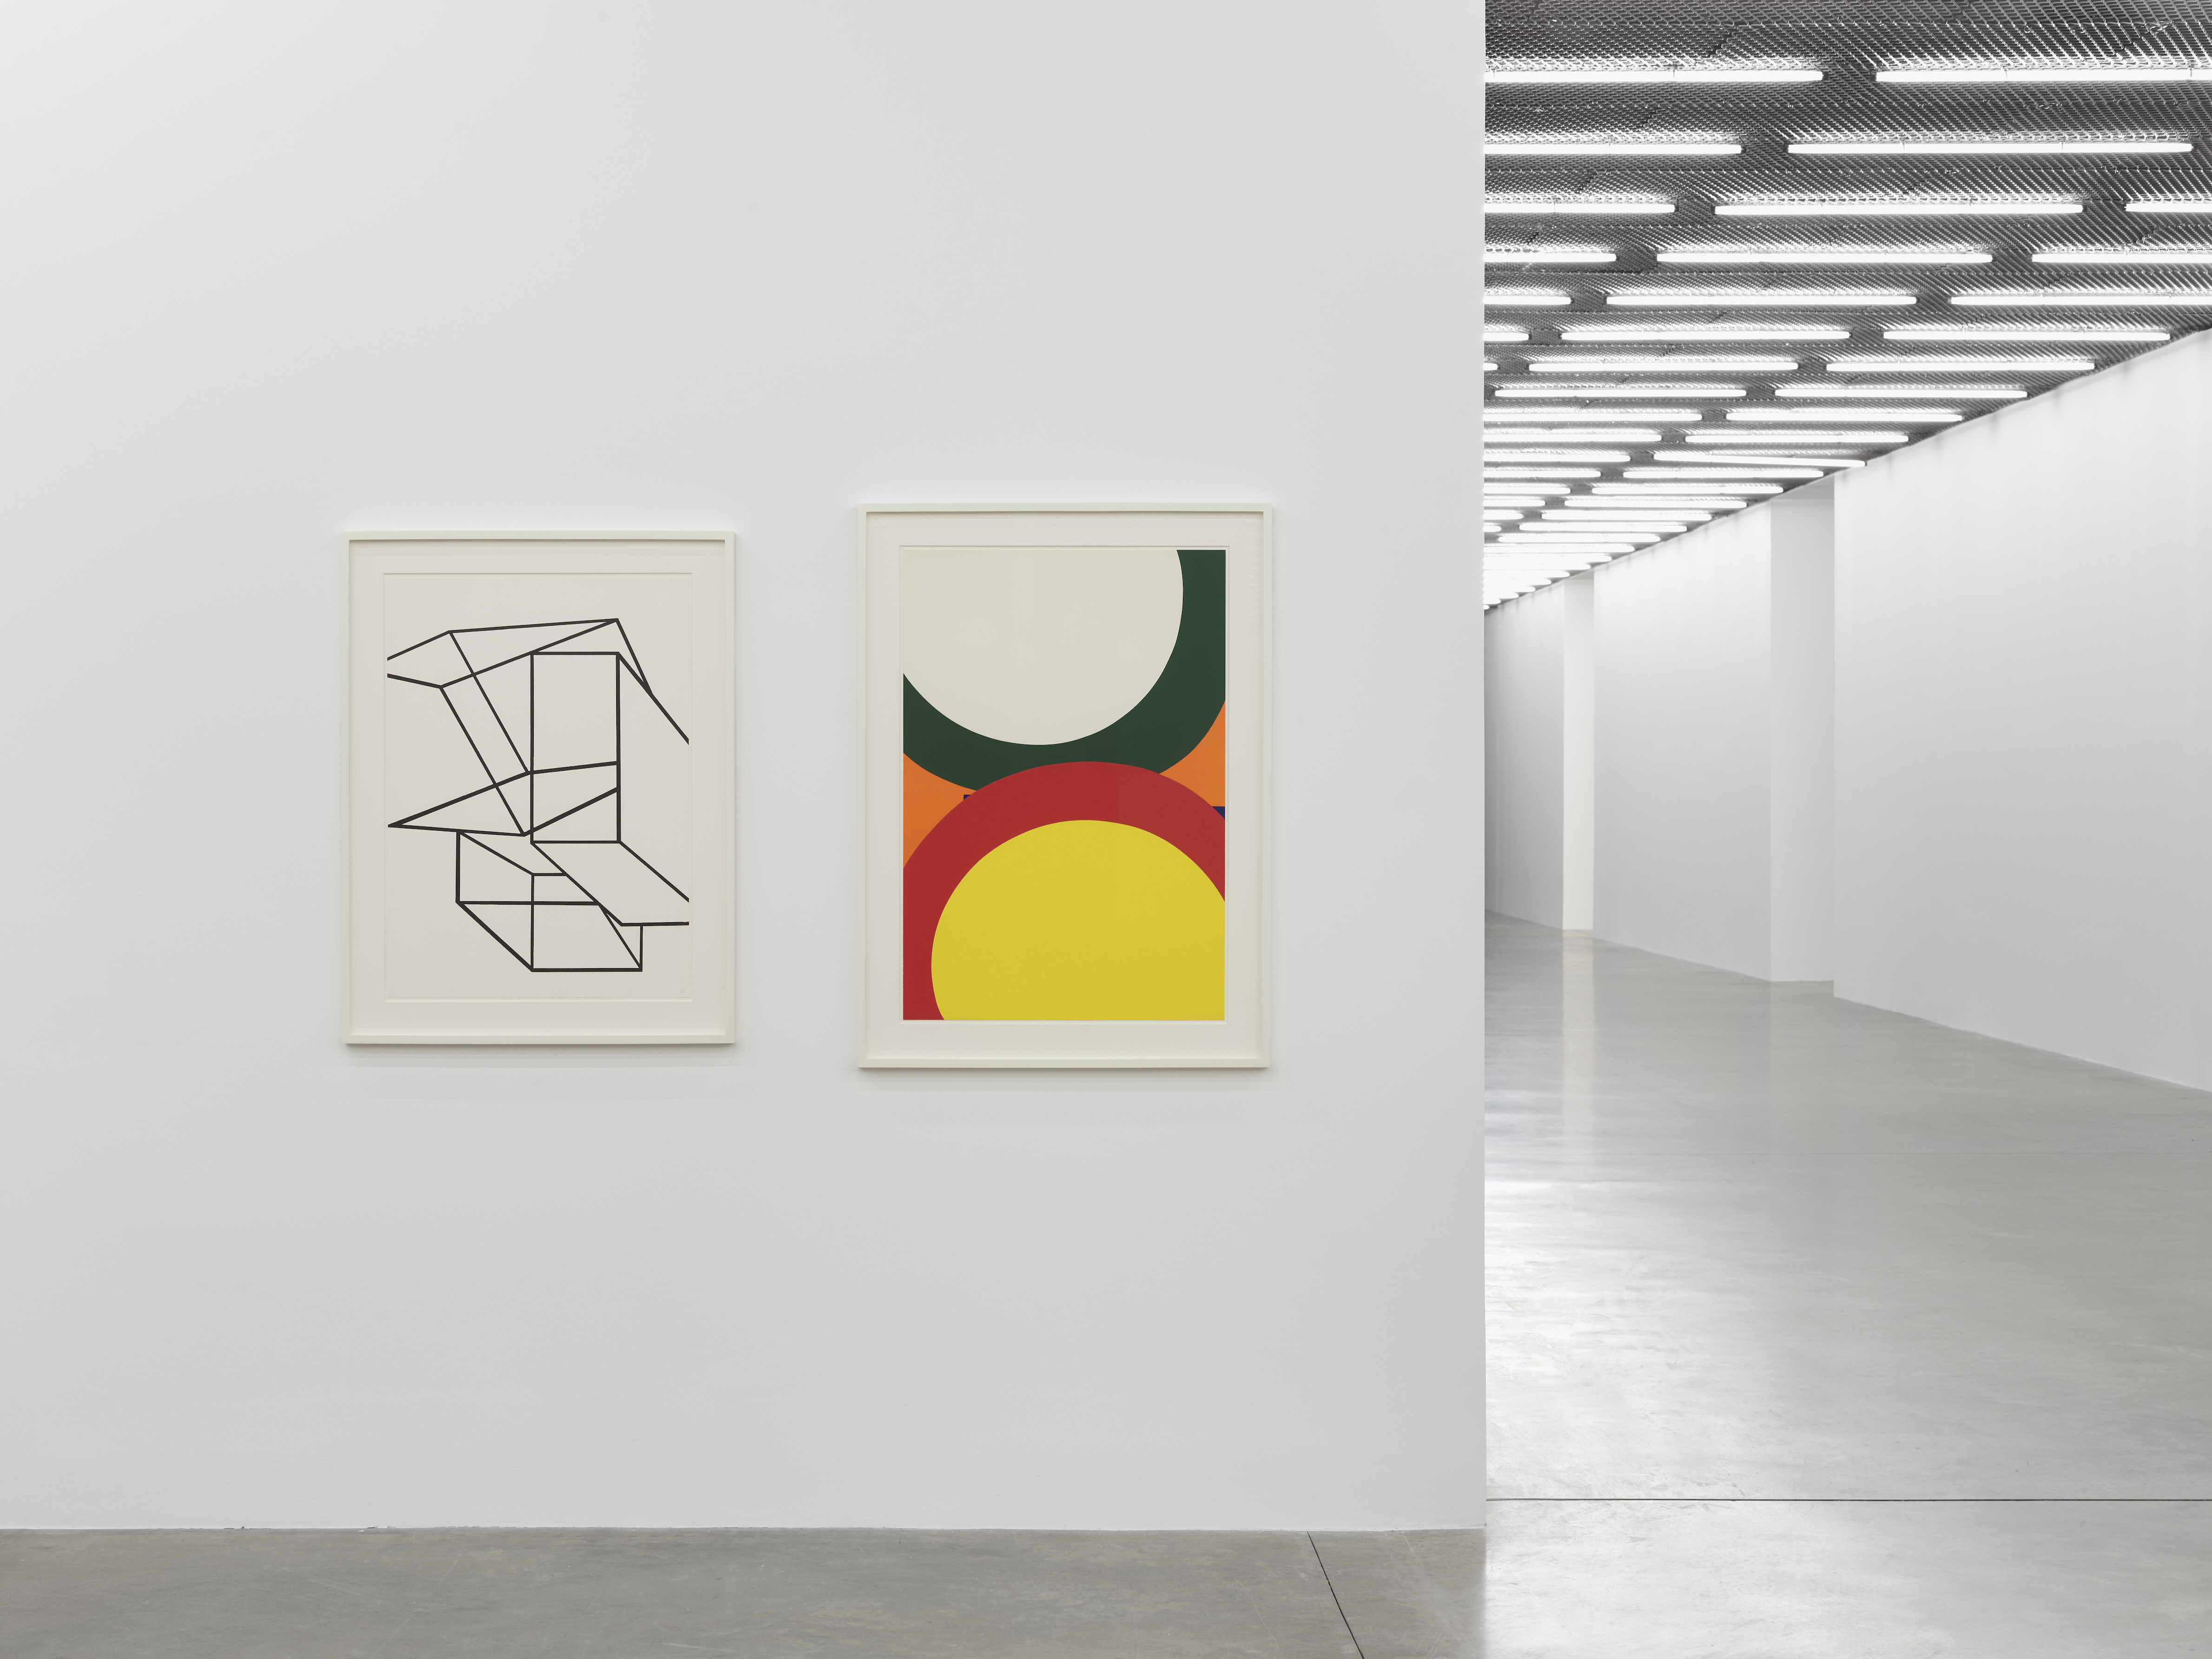 Installation view 6, 'Al Held: The Sixties' © the artist. Photo © White Cube (Theo Christelis)